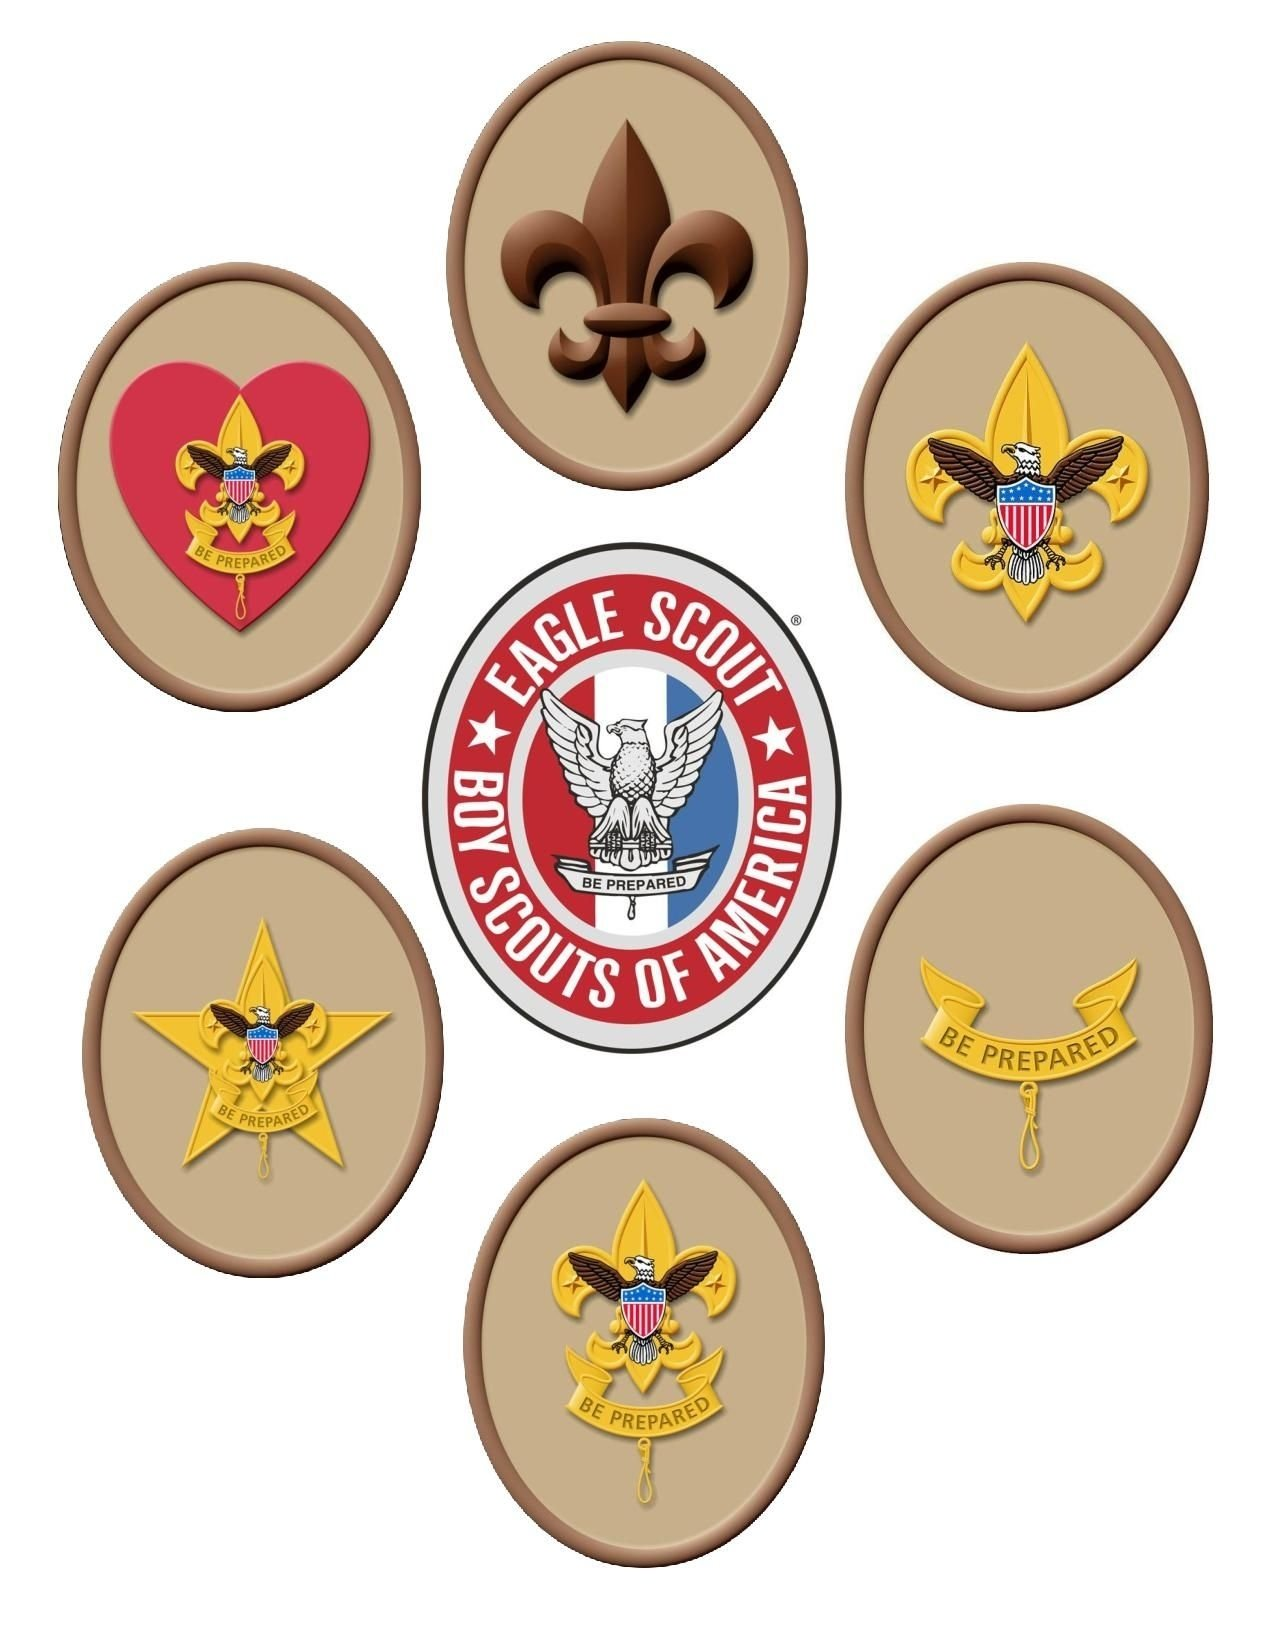 10 Gorgeous Family Life Merit Badge Project Ideas path to eagle scout scout tenderfoot second class first class 2020